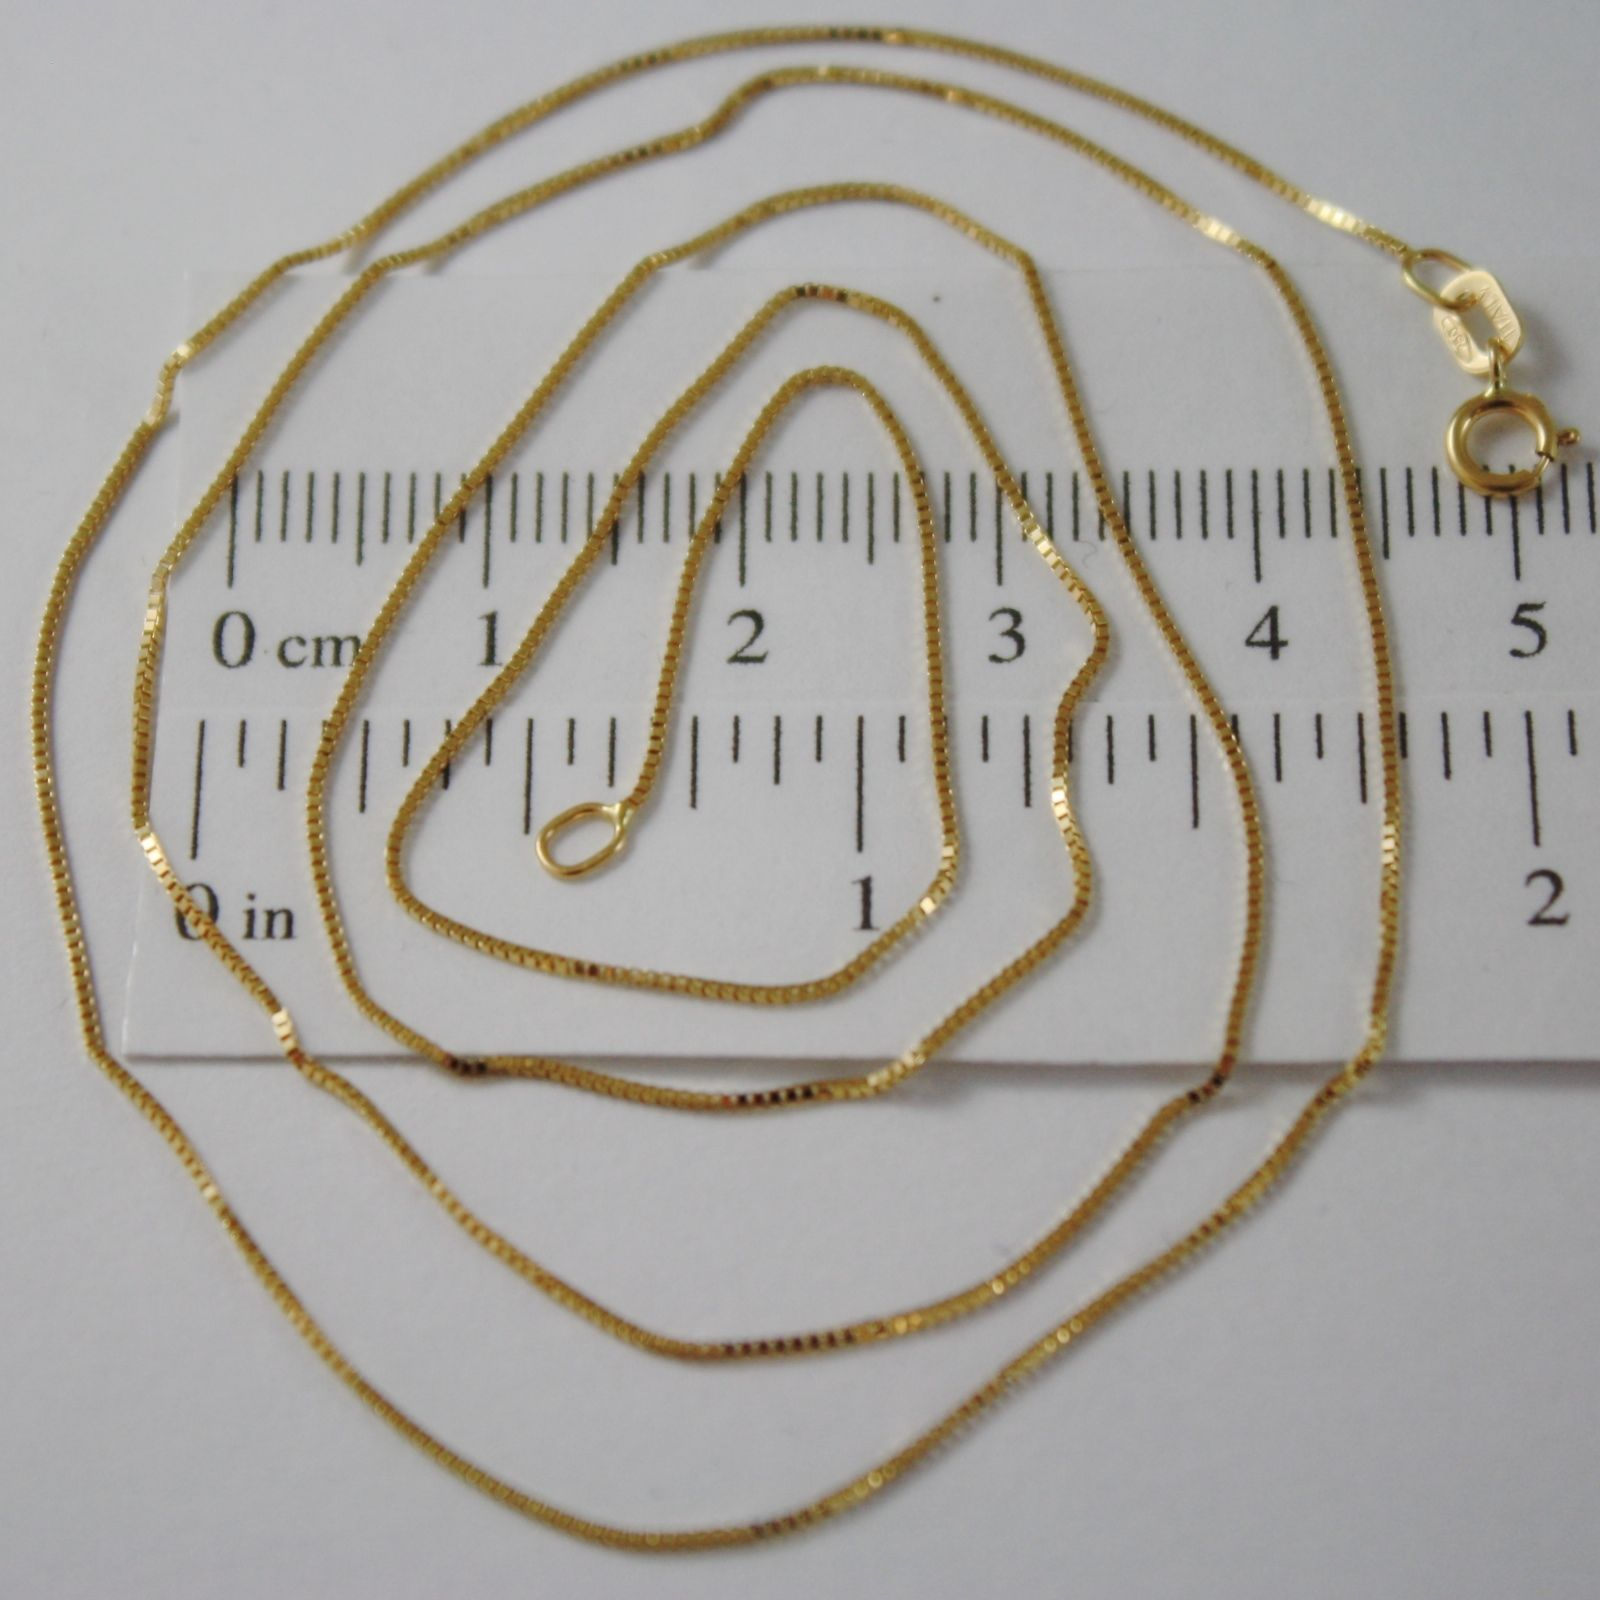 18K YELLOW GOLD CHAIN NECKLACE 0.5 mm MINI VENETIAN LINK 17.71 IN. MADE IN ITALY